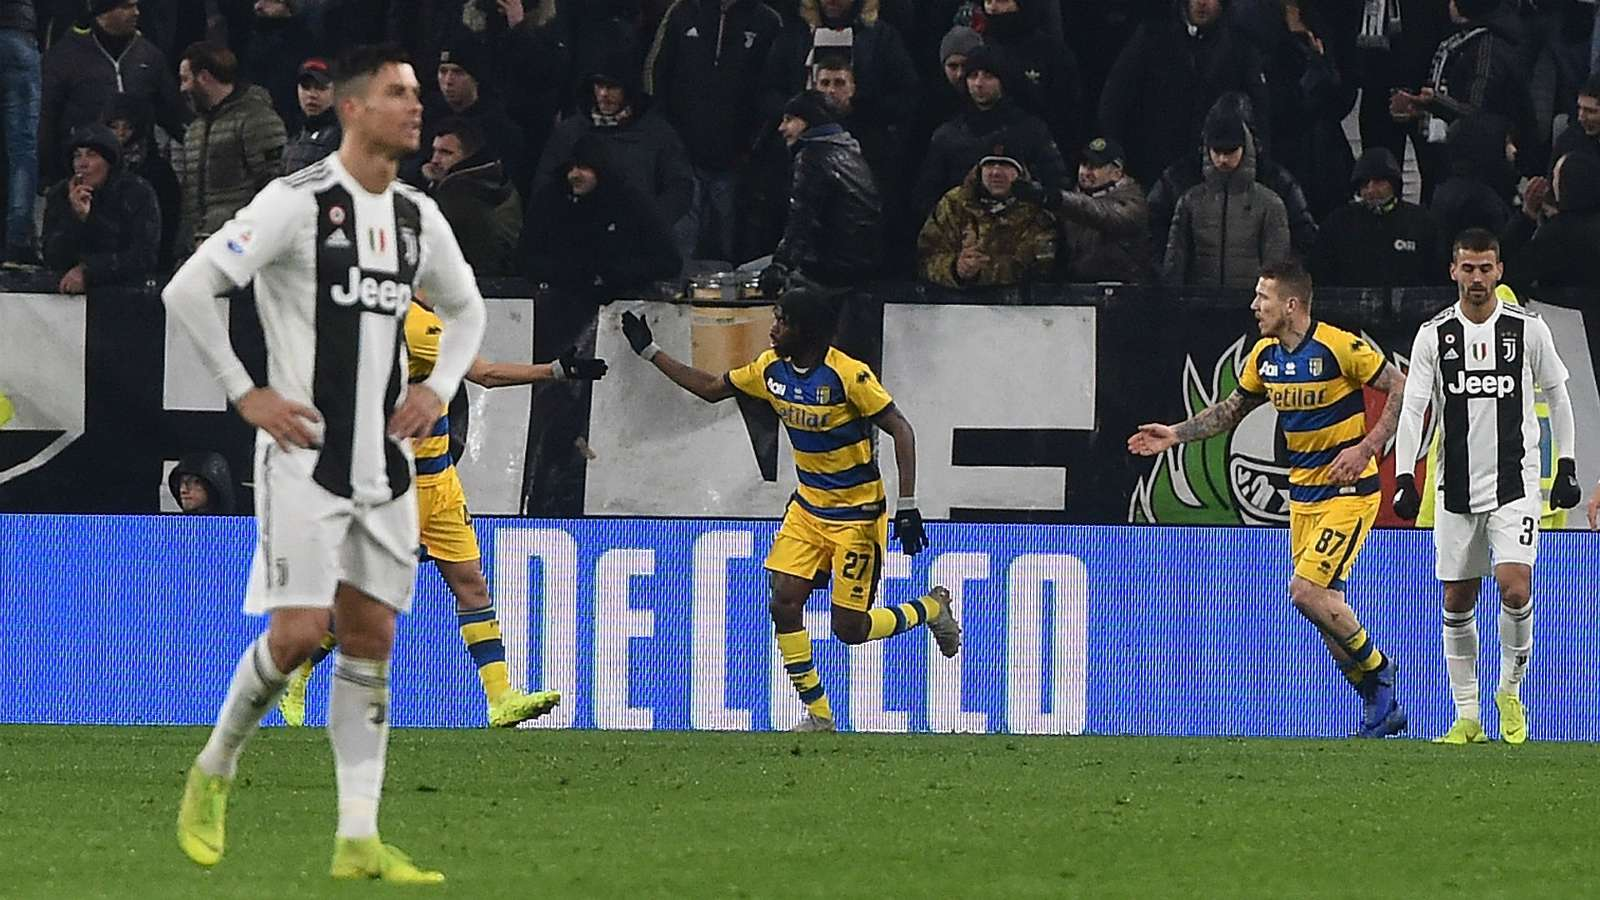 Photo of Juventus vs Parma 3-3: Serie A Match Report & Highlights